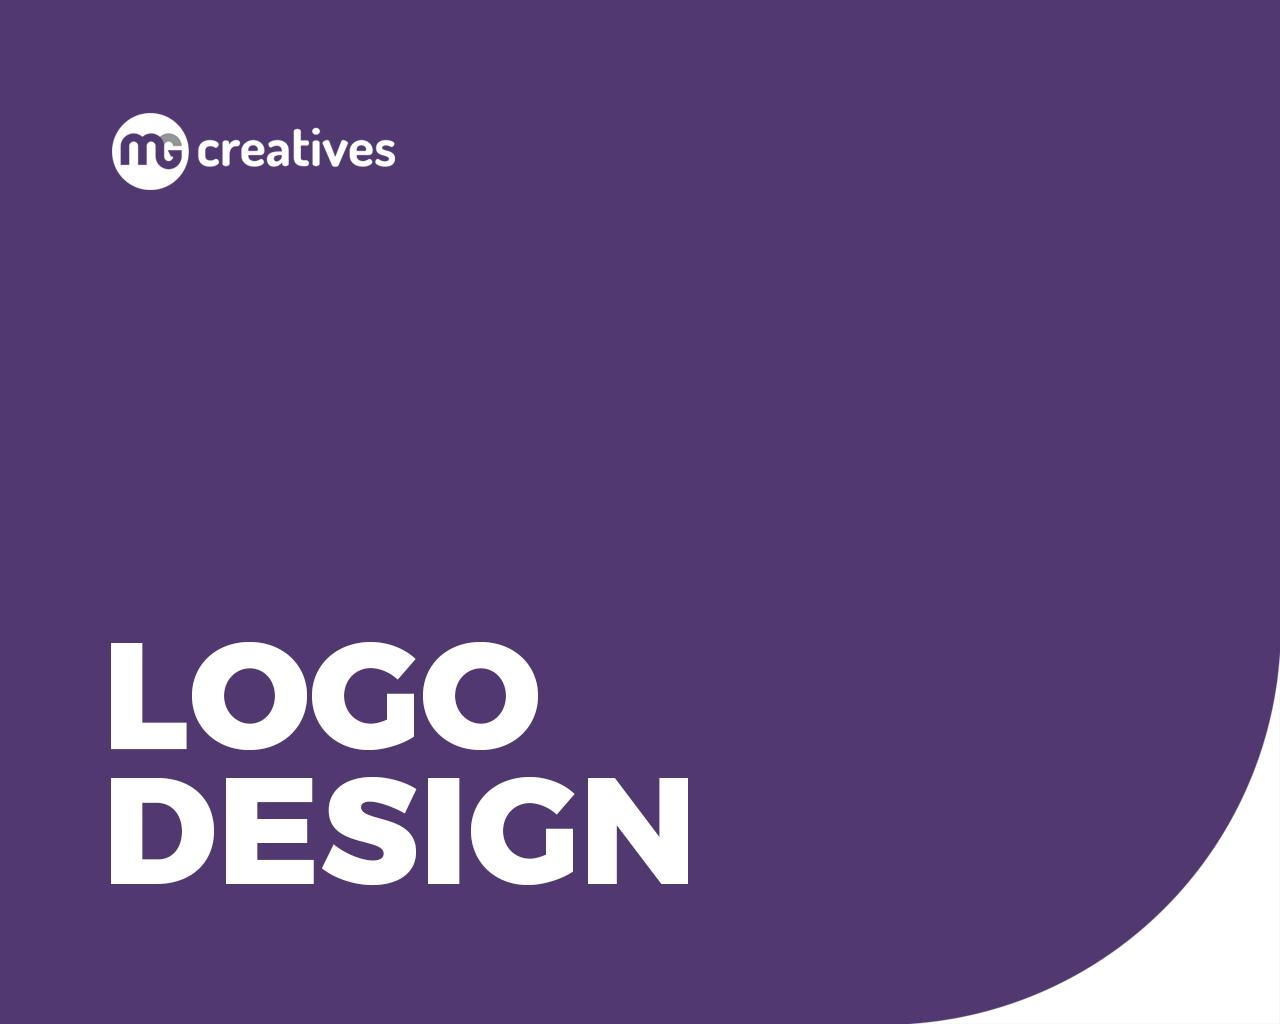 Professional Logo Design  by mgcreatives - 95918